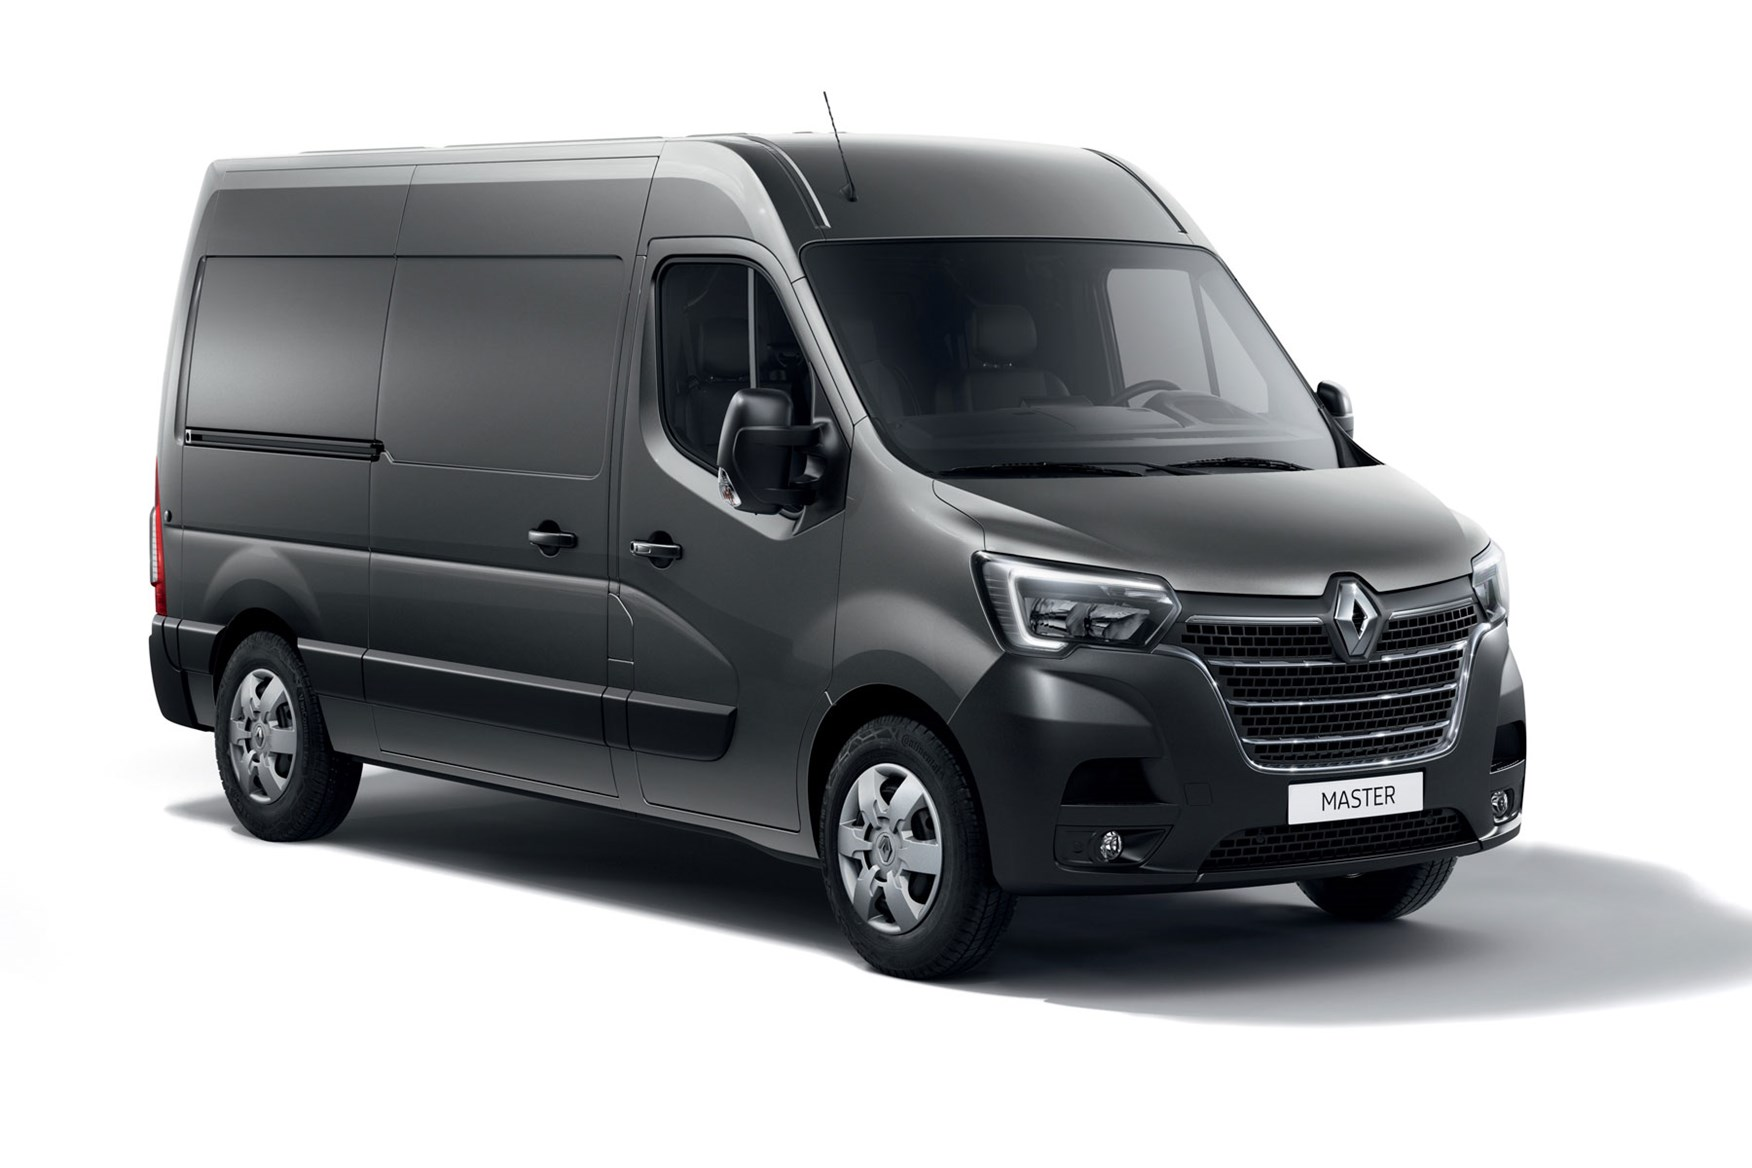 2019 renault master facelift  u2013 full details of new